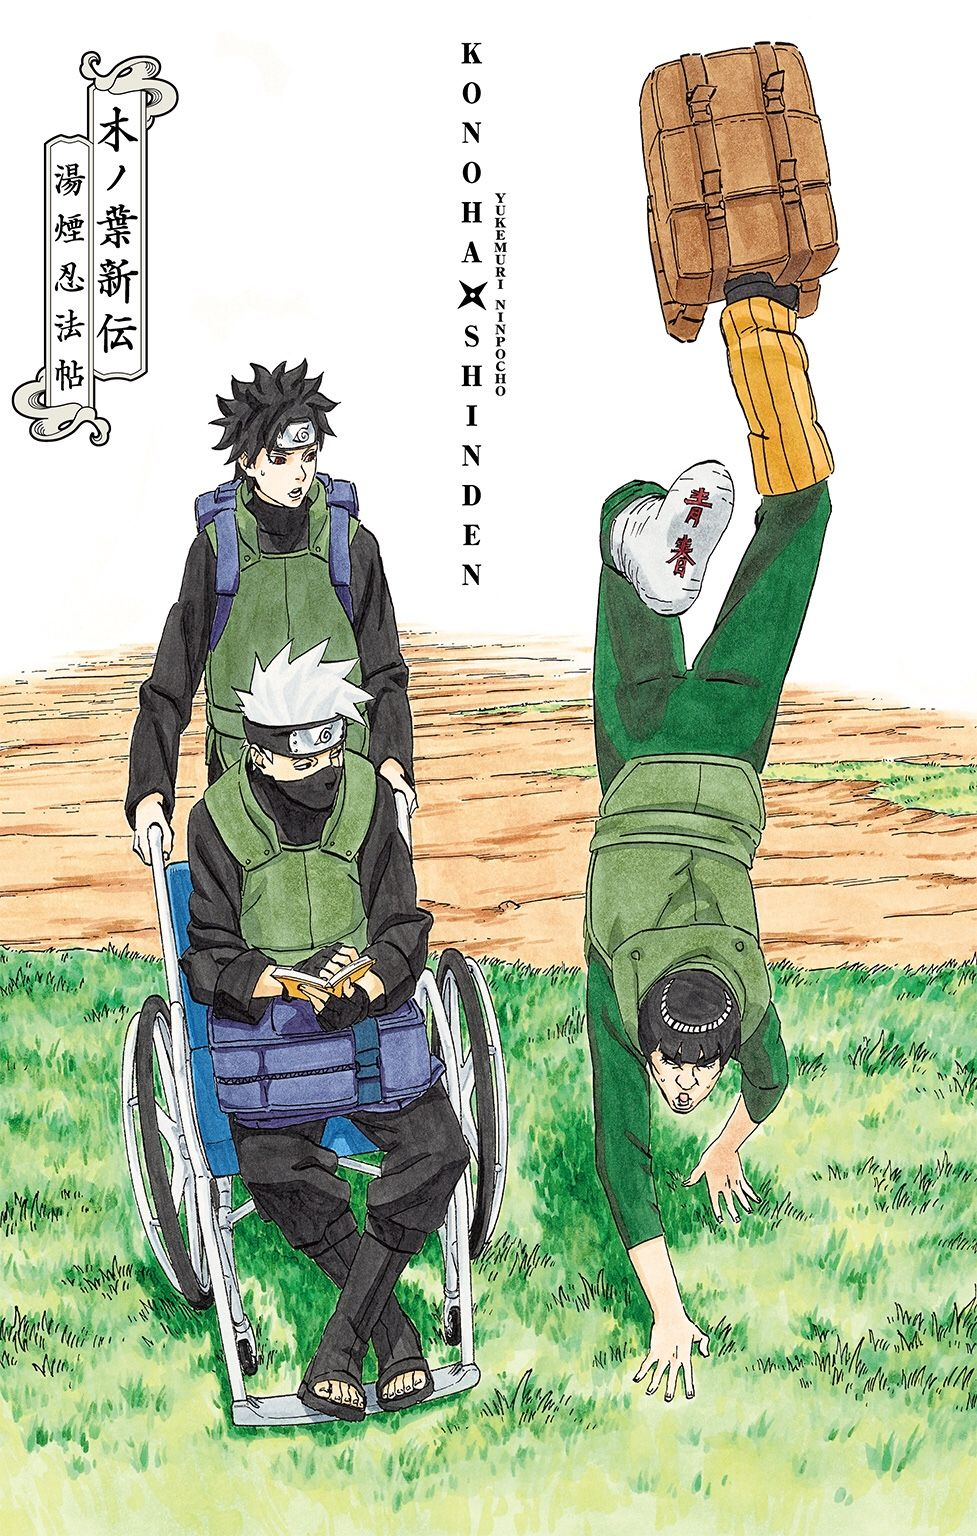 I want to read this novel so much!!! (Konoha shinden!) it